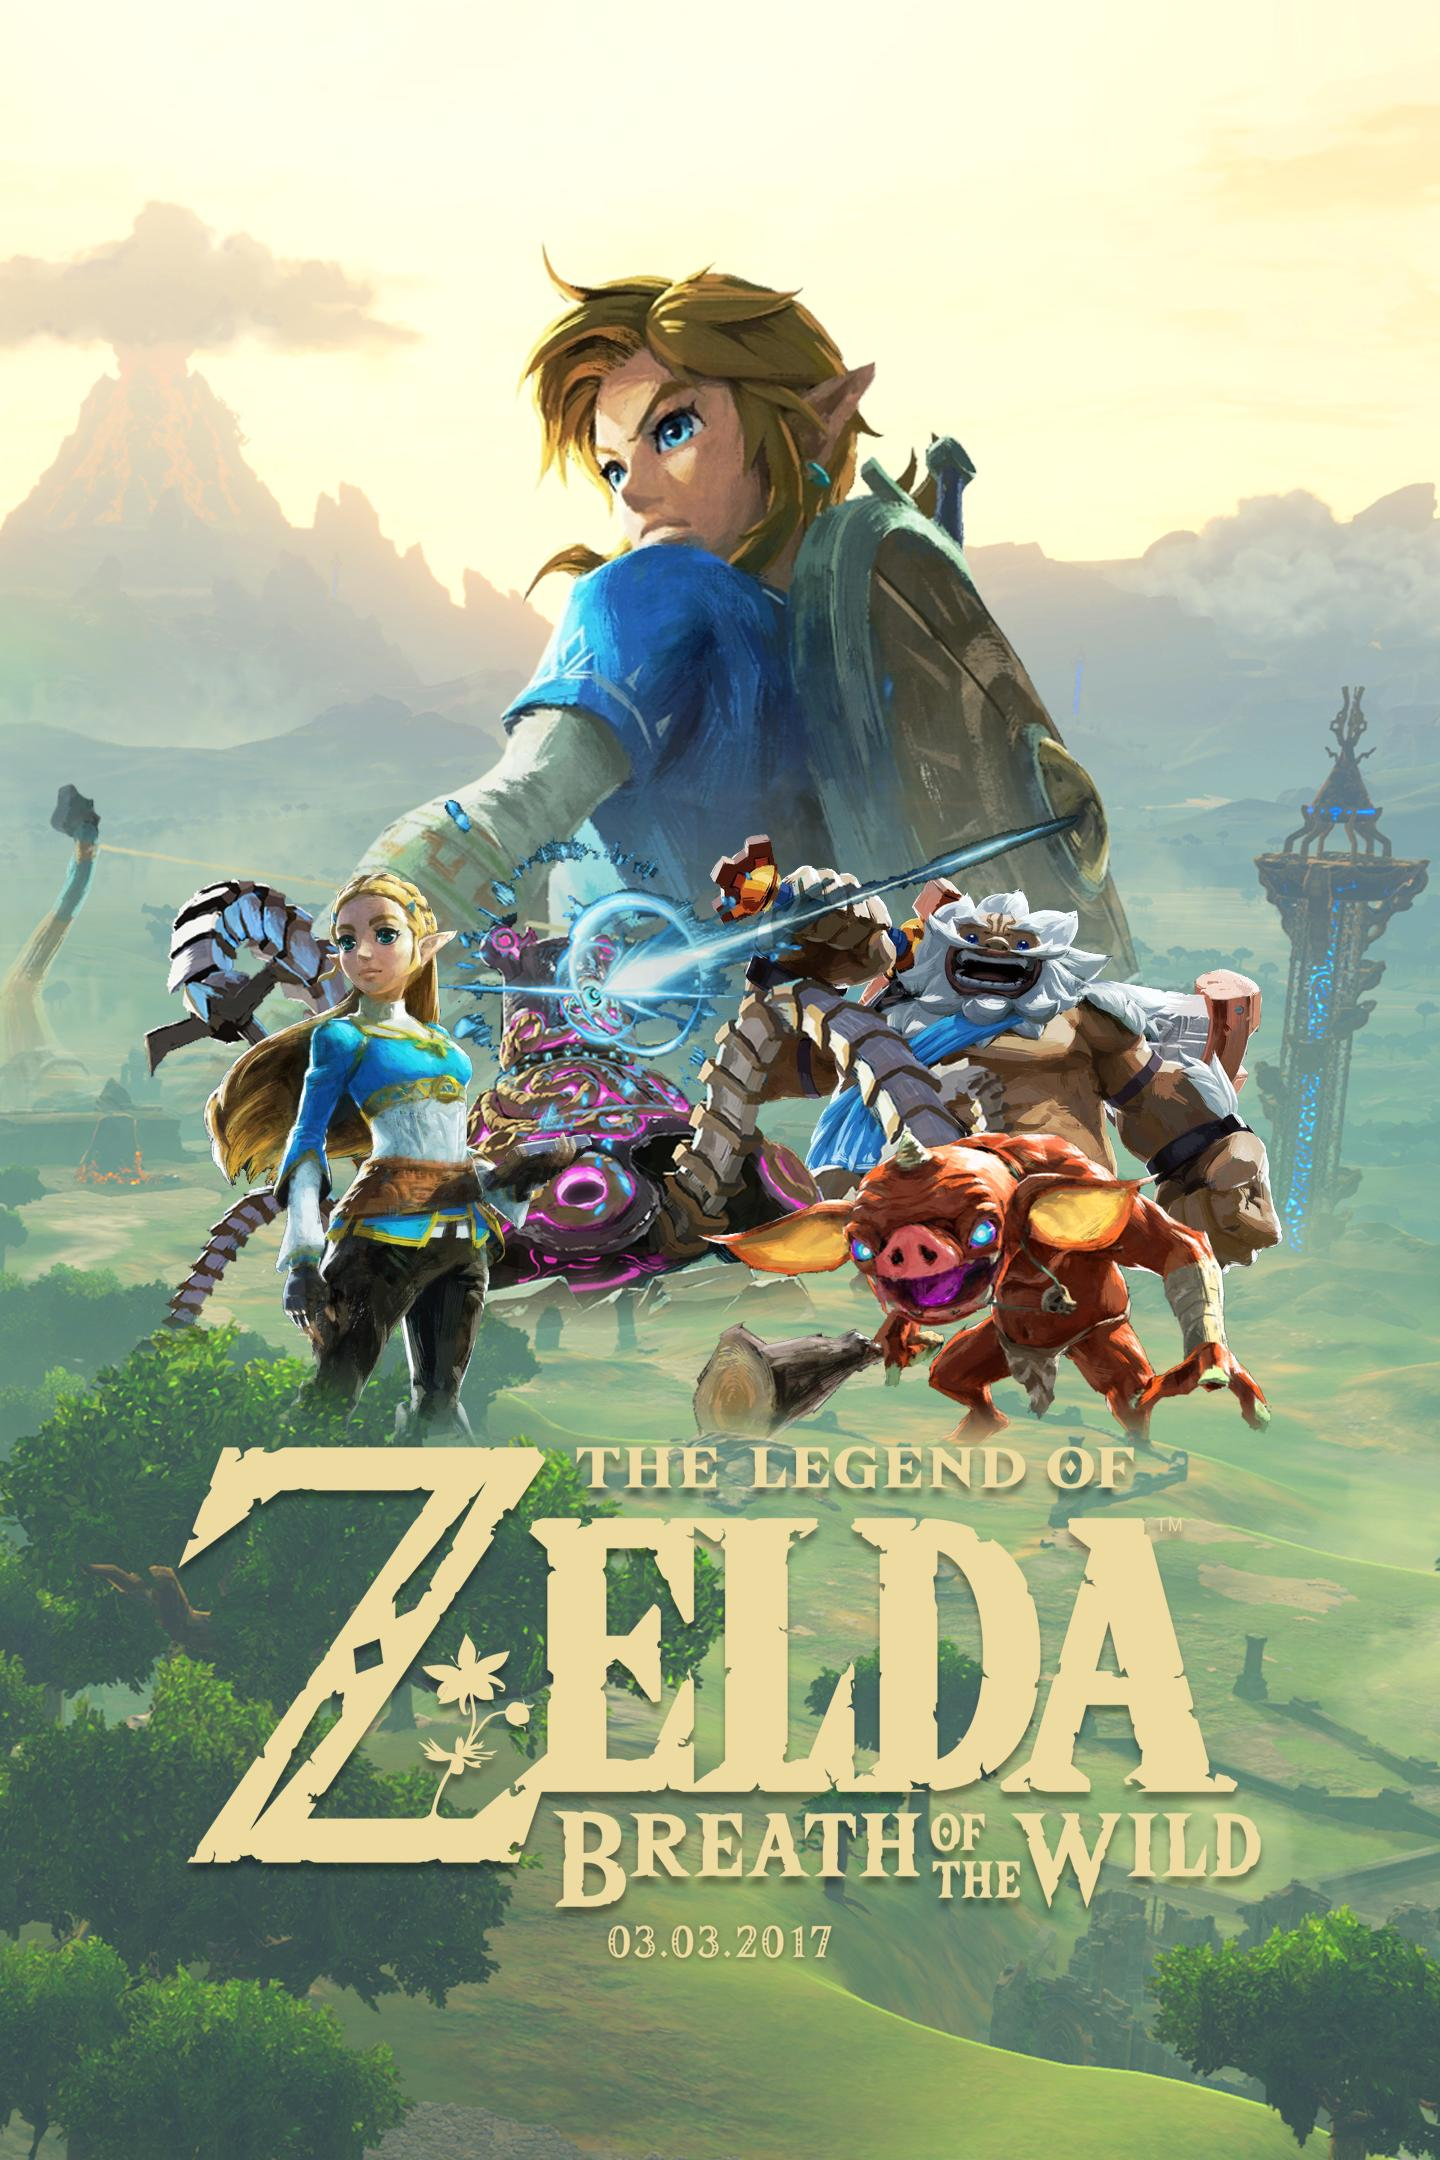 The Legend of Zelda: Breath of The Wild – A Review